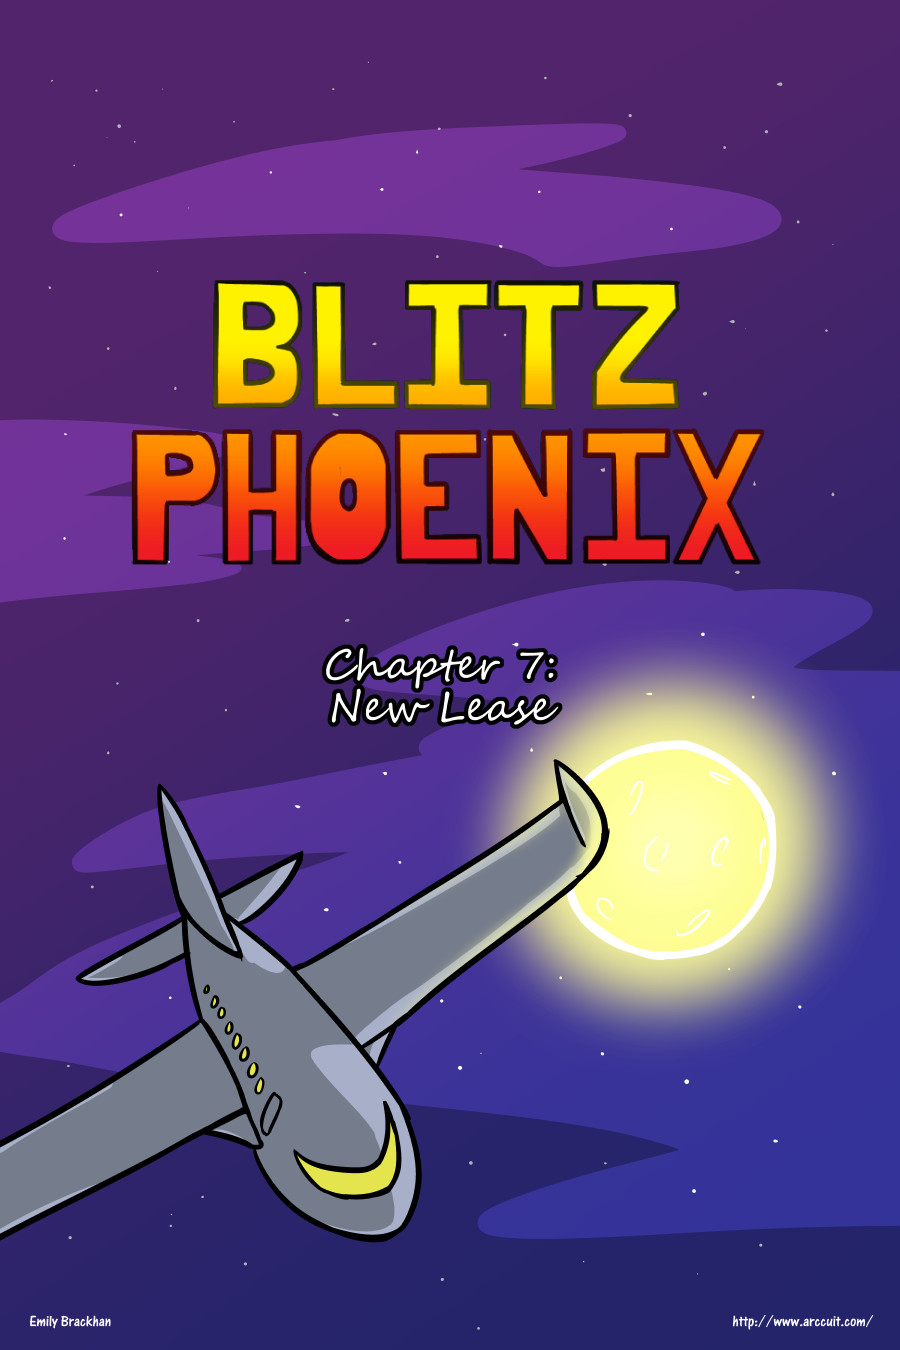 Blitz Phoenix: Chapter 7 - New Lease